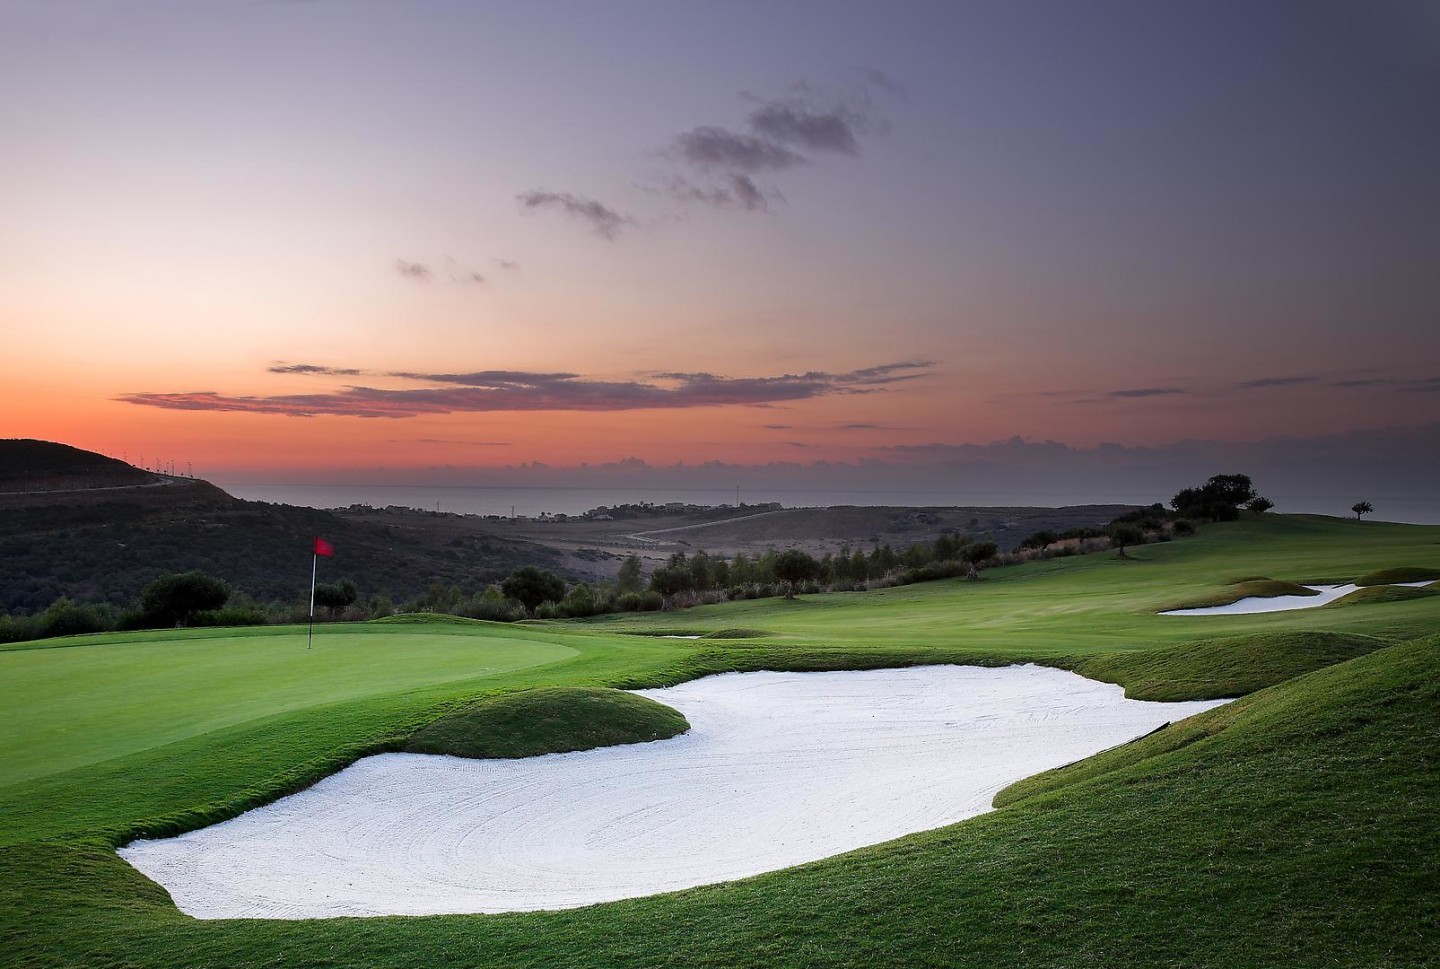 MaRBELLa Is BACK - A GOlF PArADISe